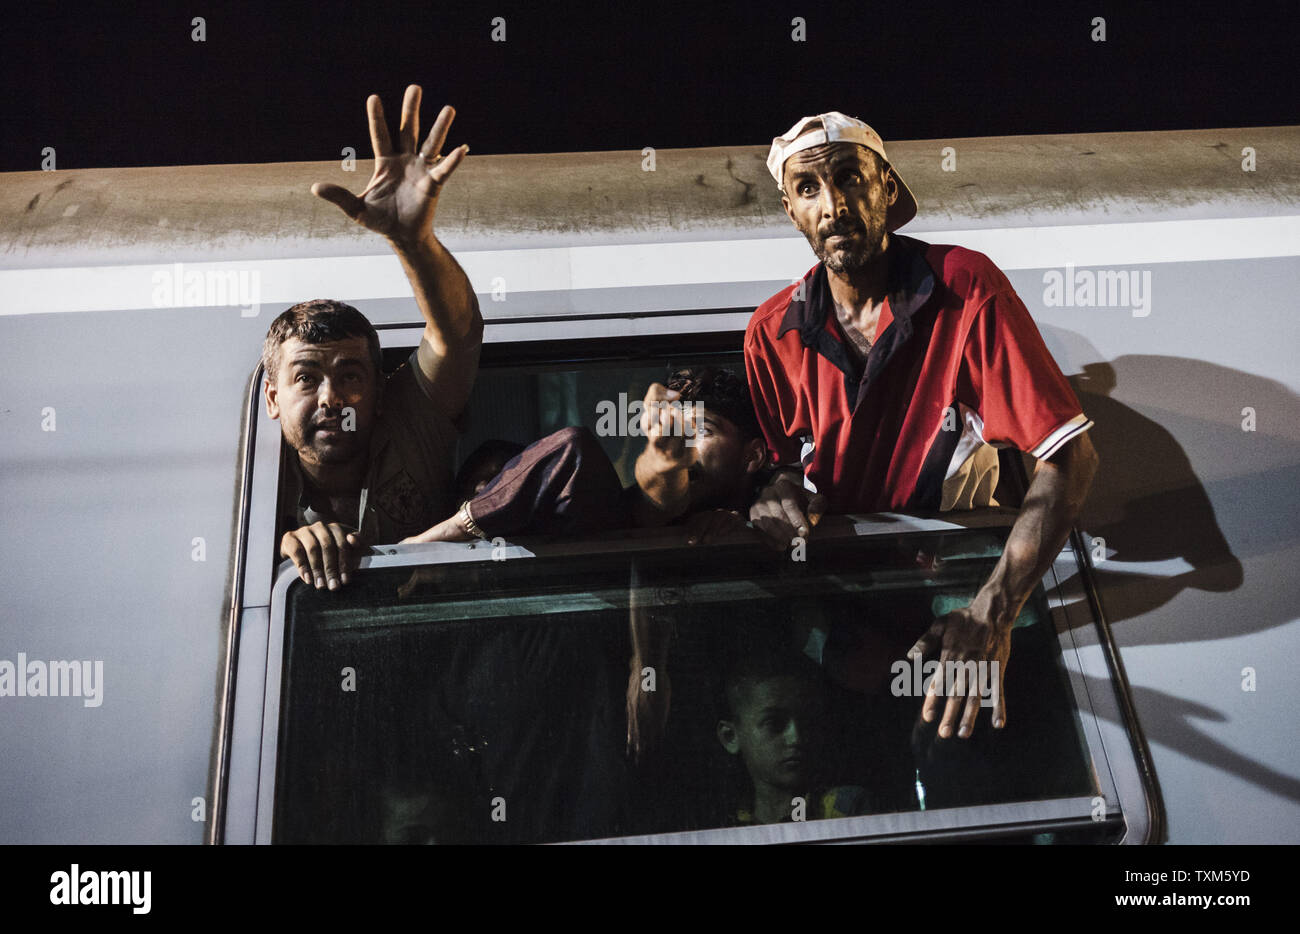 Migrants and refugees wave from a window of a train in the Tovarnik train station that will transport them to Austria on September 18, 2015 in Tovarnik, Croatia.  Photo by Achilleas Savallis/UPI. - Stock Image